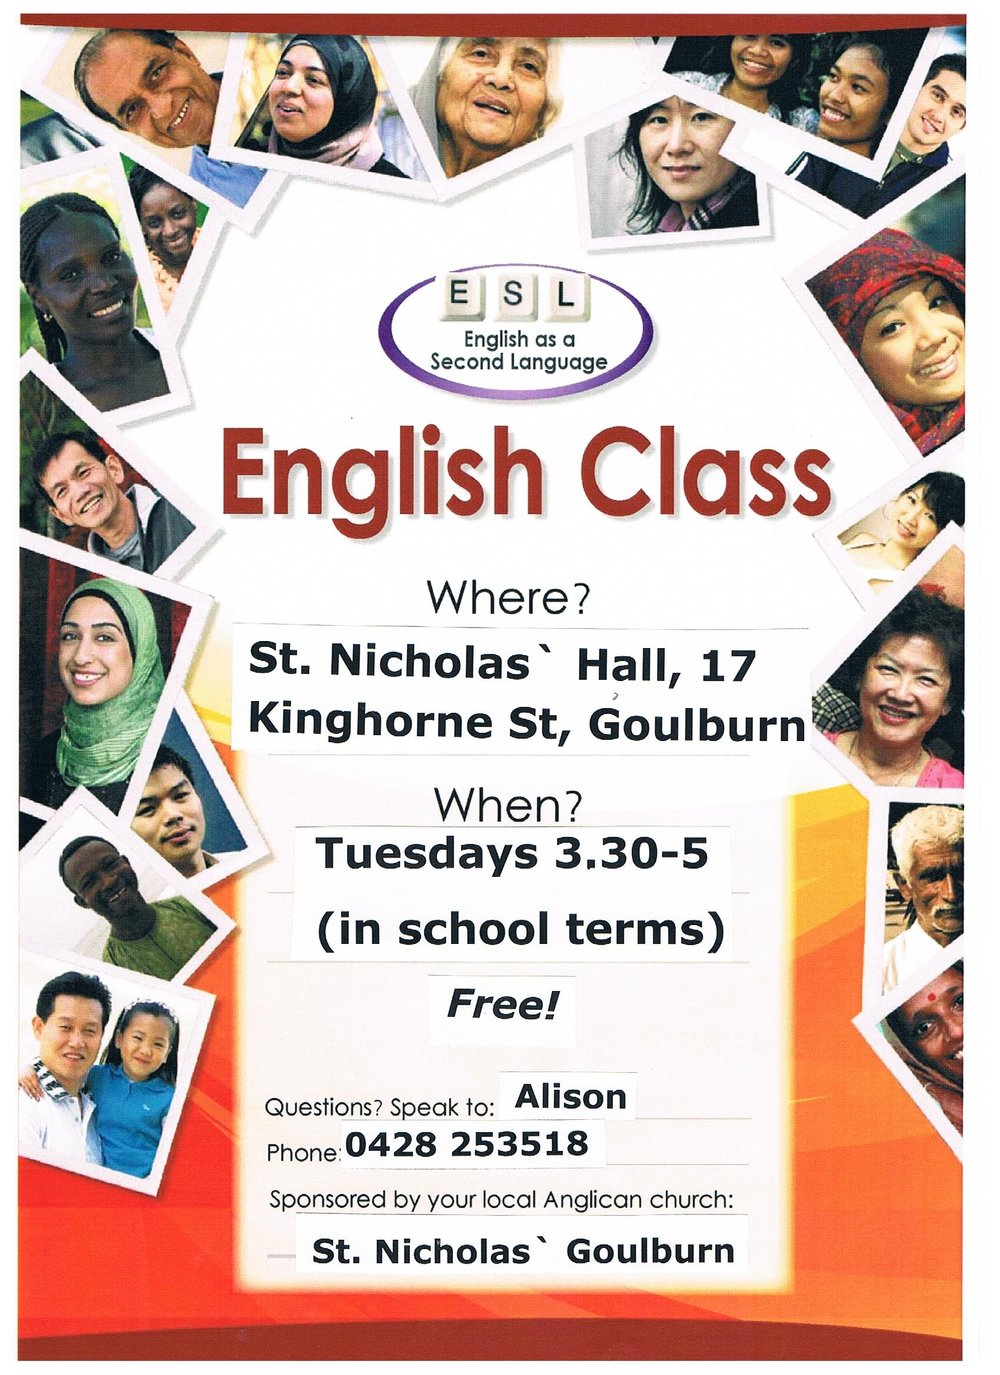 English Classes   are held at St Nicholas' Hall 17 Kinghorne Street, Goulburn Each Tuesday (during school terms), from 3:30pm until 5pm. Free of Cost.